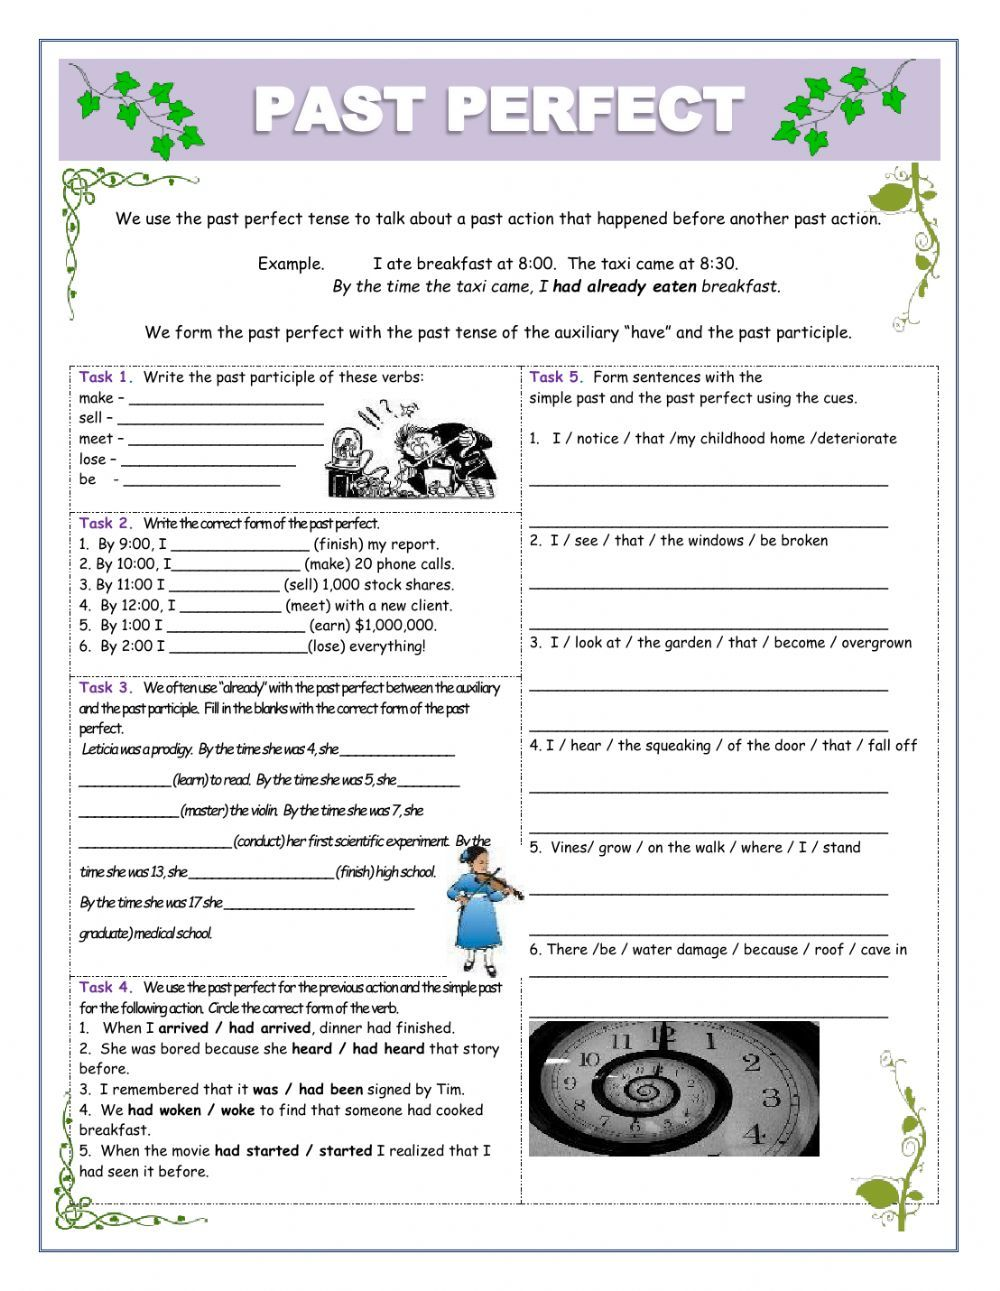 Past Perfect Interactive And Downloadable Worksheet Check Your Answers Online Or S English As A Second Language English Grammar Worksheets Intermediate School Participle worksheets with answers